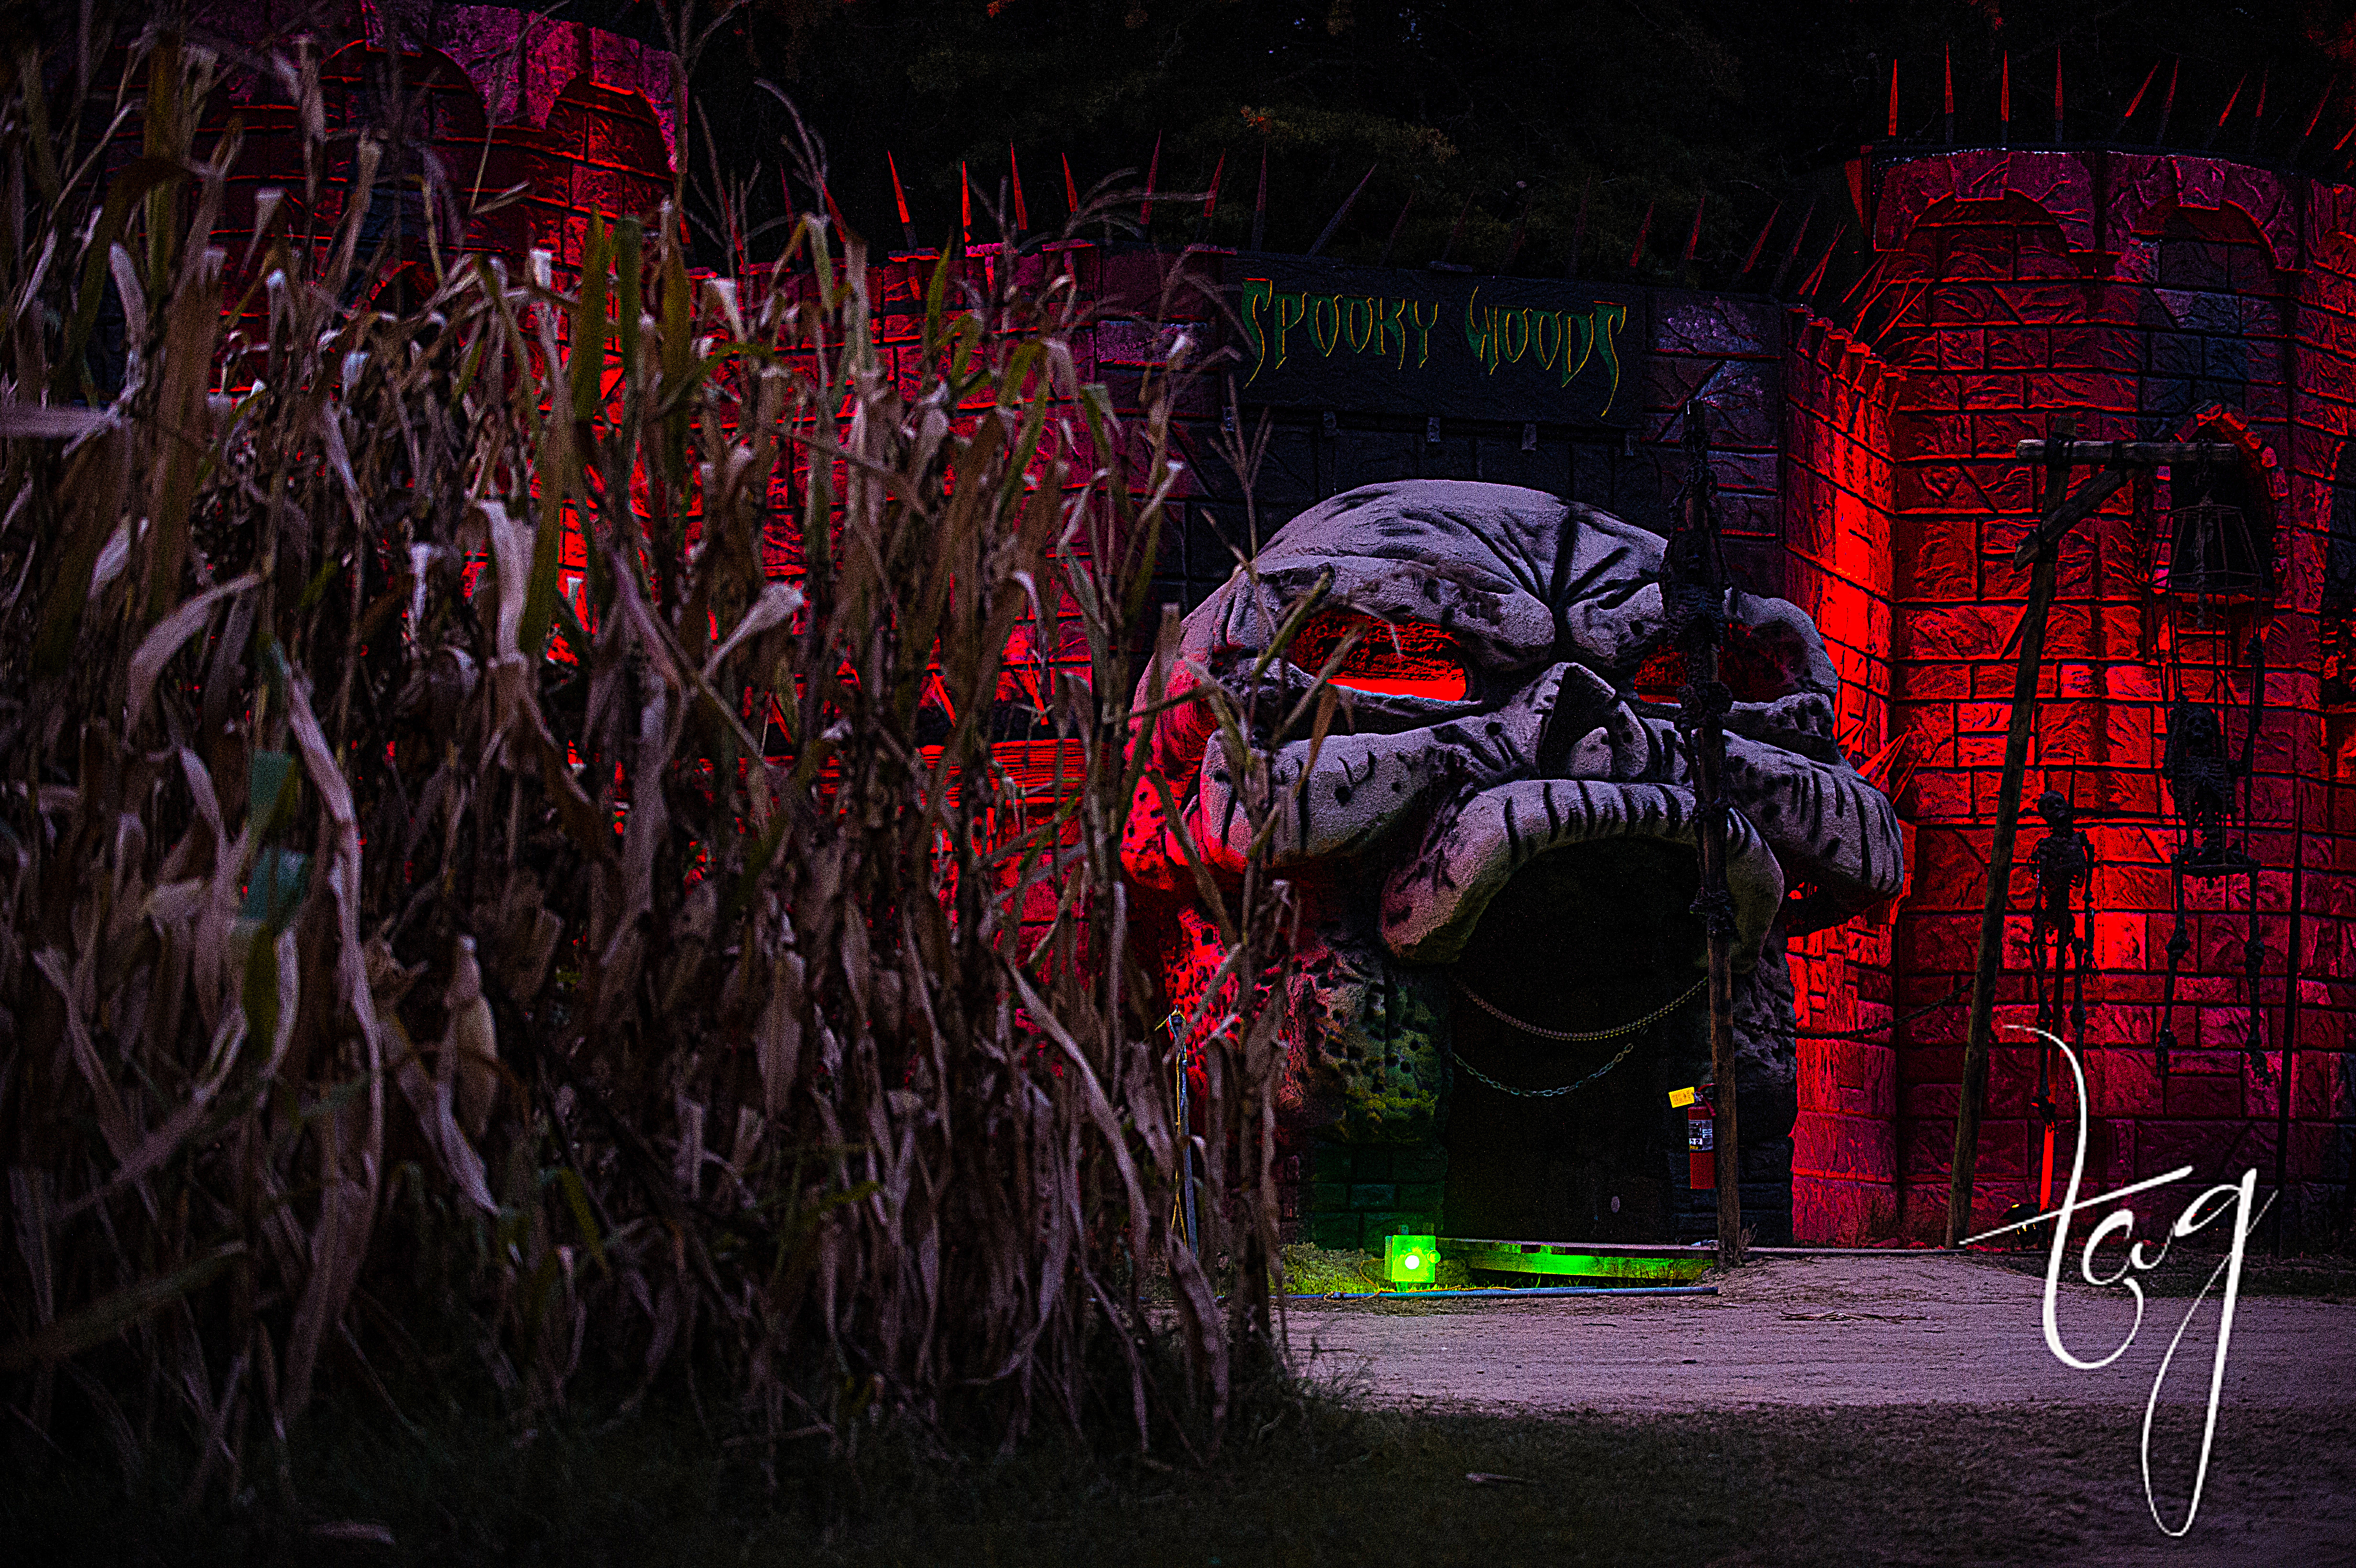 Haunted House Association is the source to learn details and information about the haunted house and haunted attraction industry from sales facts, types of events, best and scariest attractions across the country including safety of events. illbook.ml